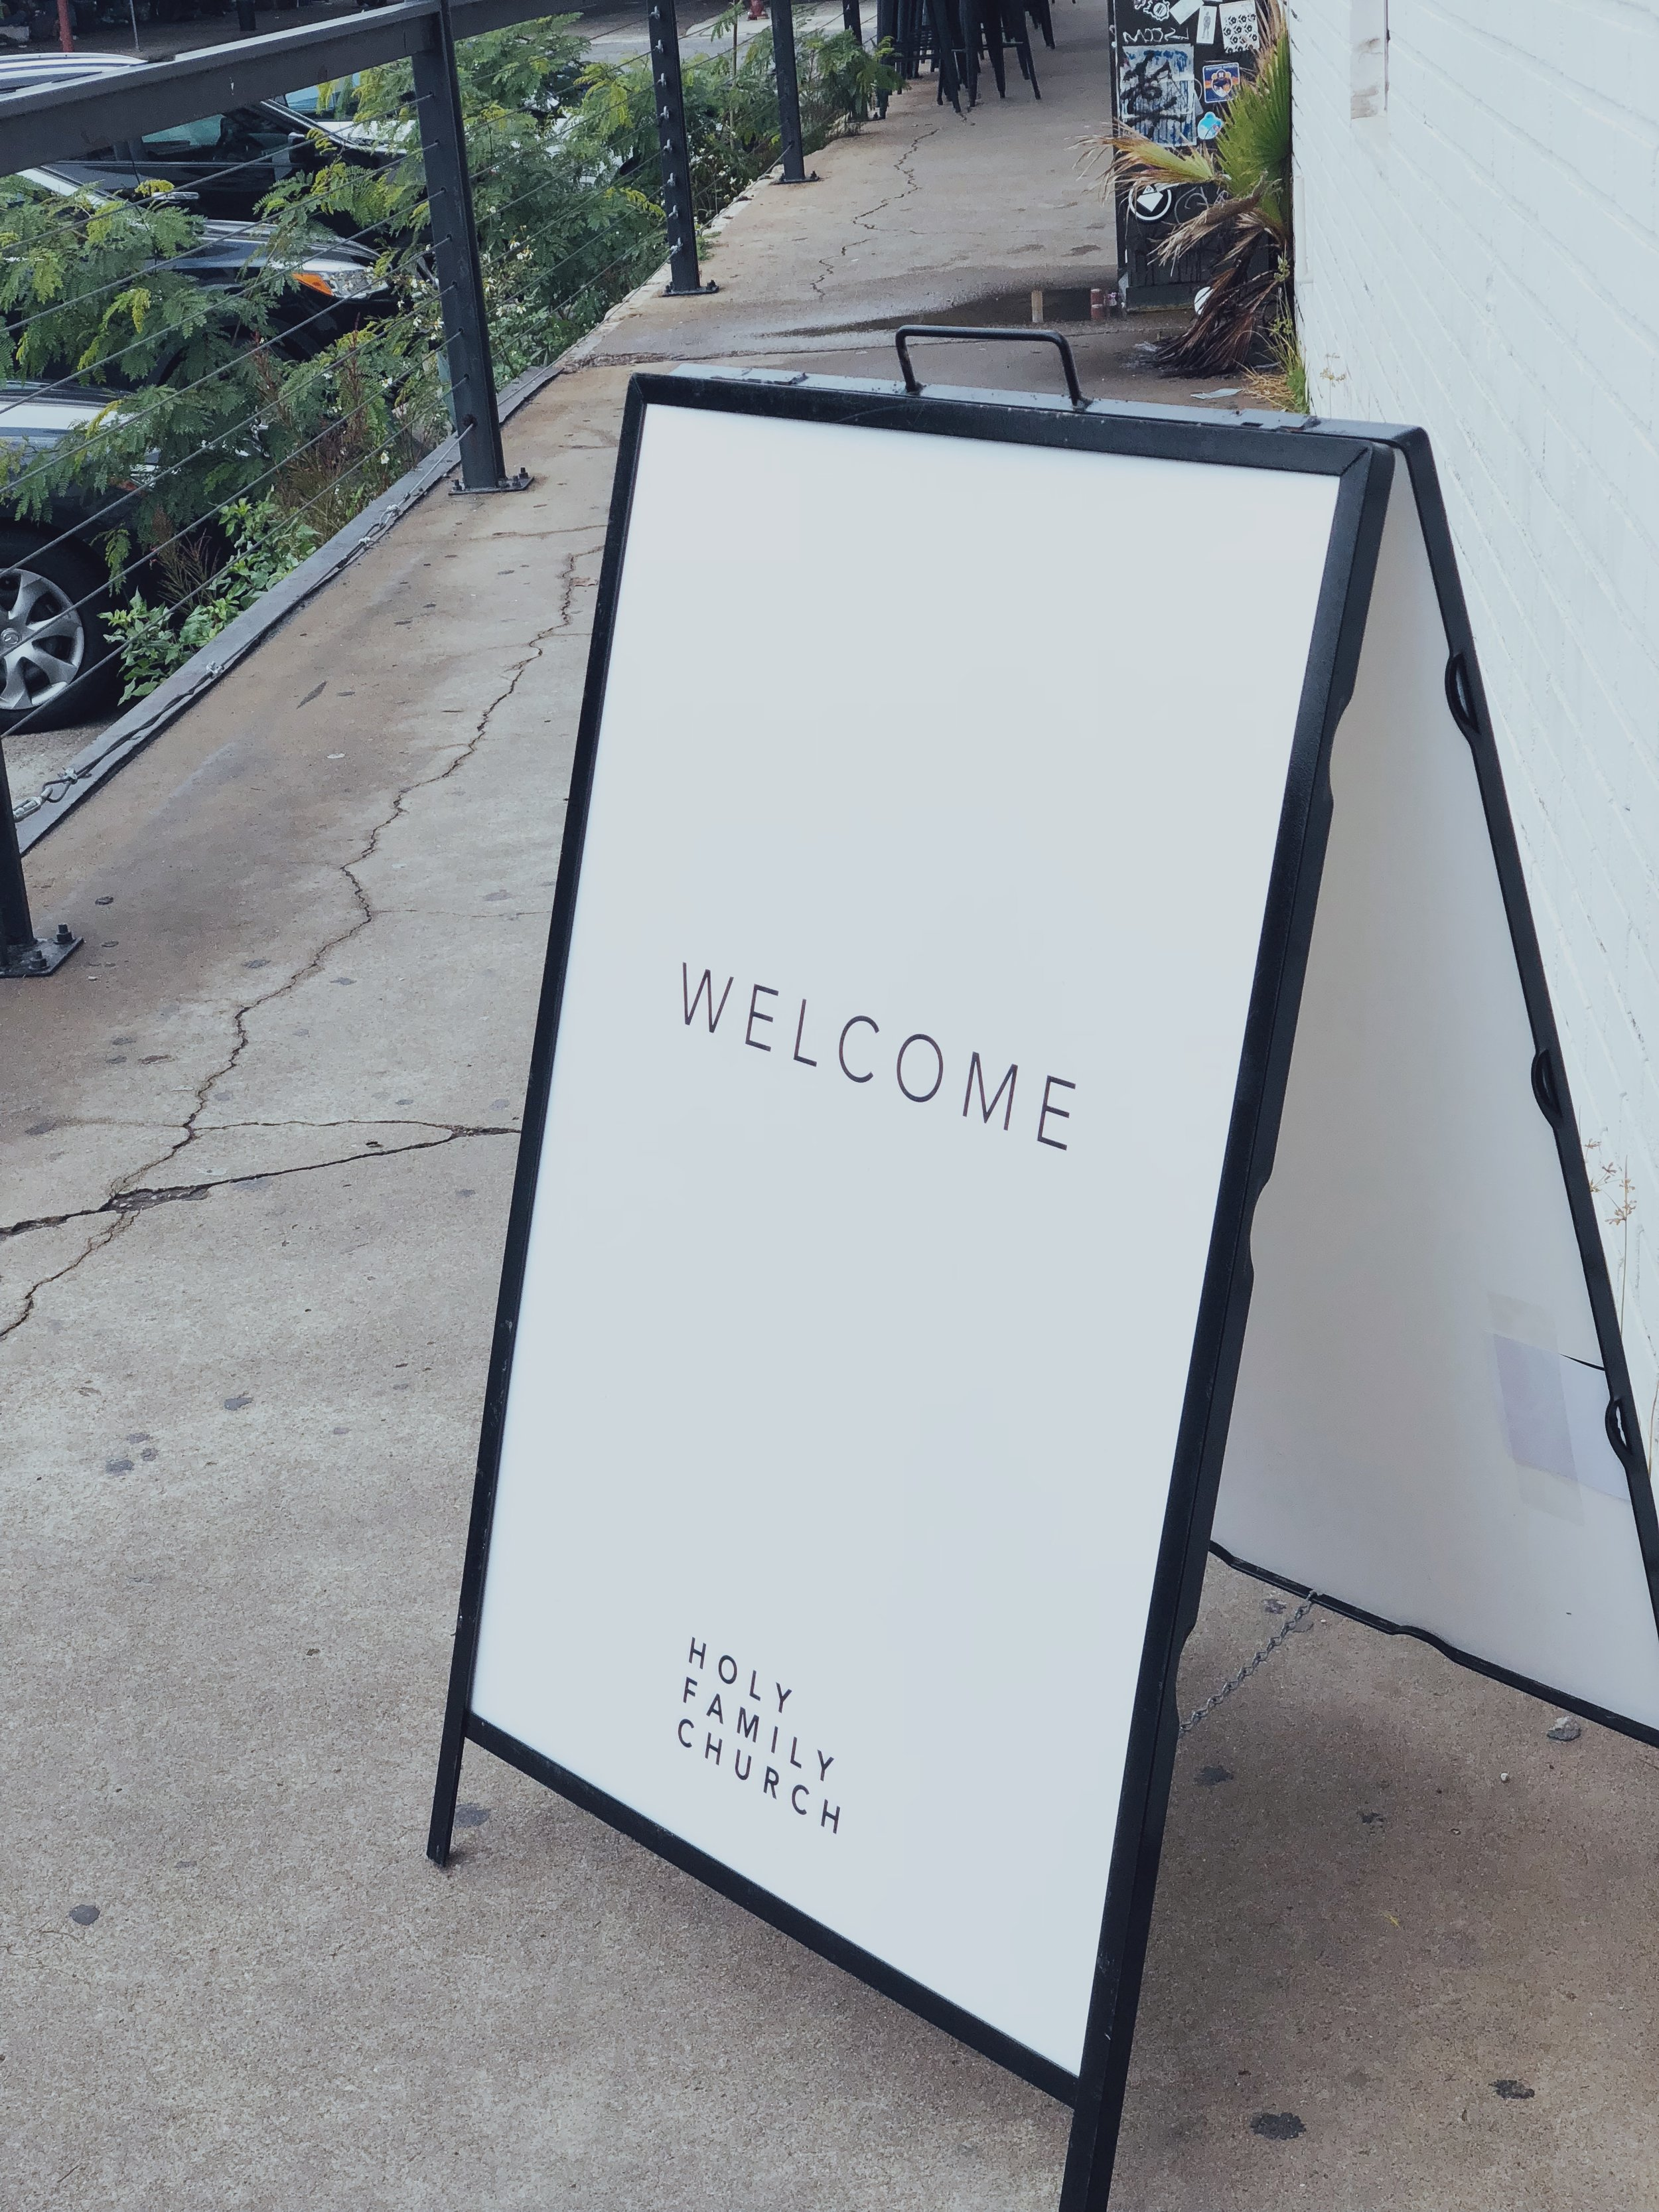 PARKING - Look for the Holy Family Church sandwich boards outside of the doors on Commerce Street.